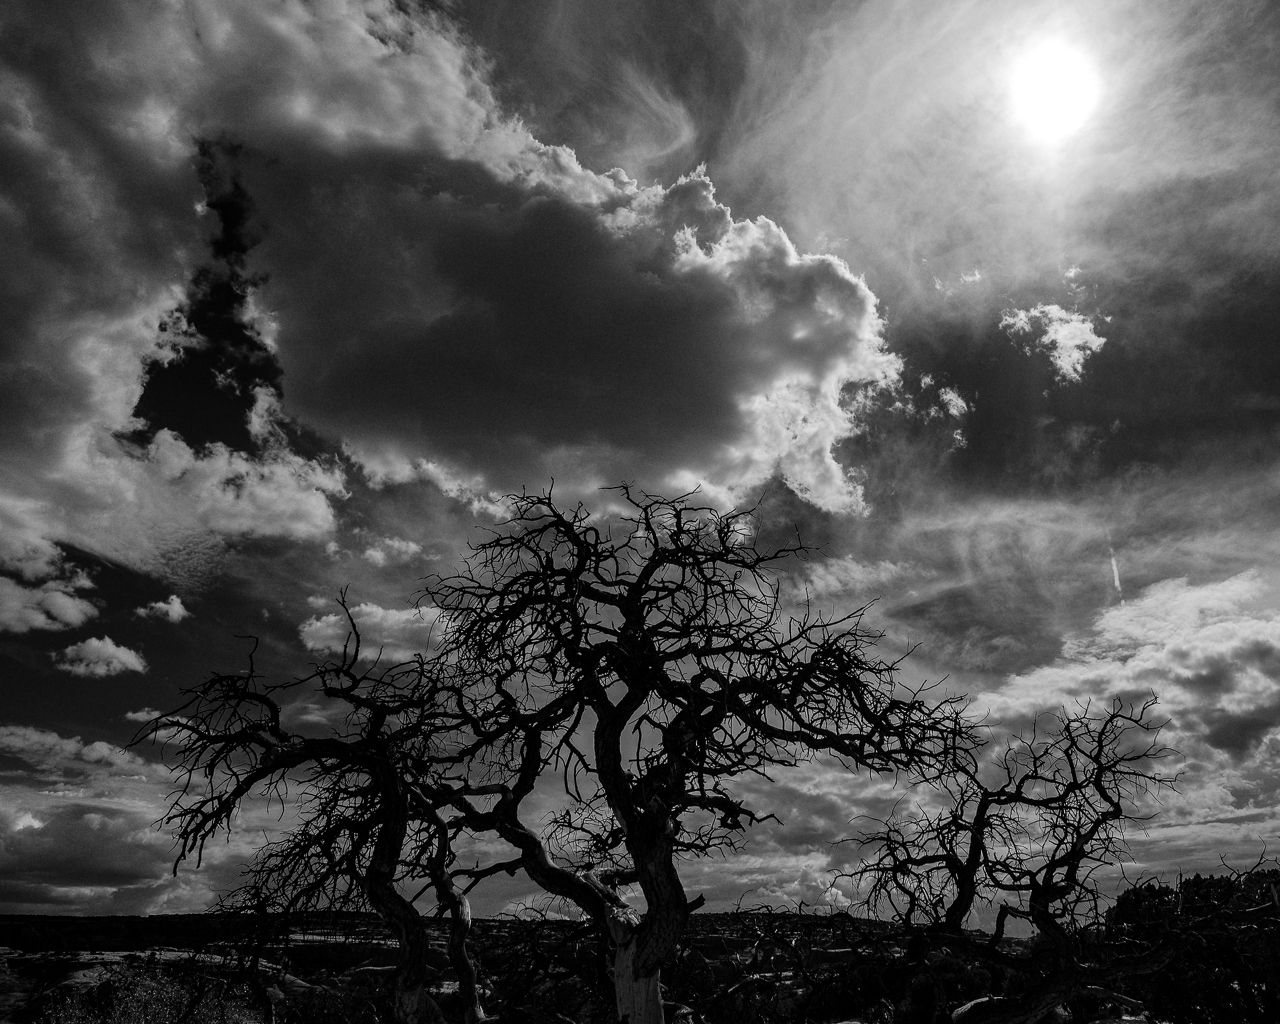 Day 218 - 365 Day B&W Photo Challenge - The mid-day desert sun hovers over the storm clouds and the struggling Pinon trees. - Fuji X-T3, XF 14mm f/2.8, Acros  R Film Simulation